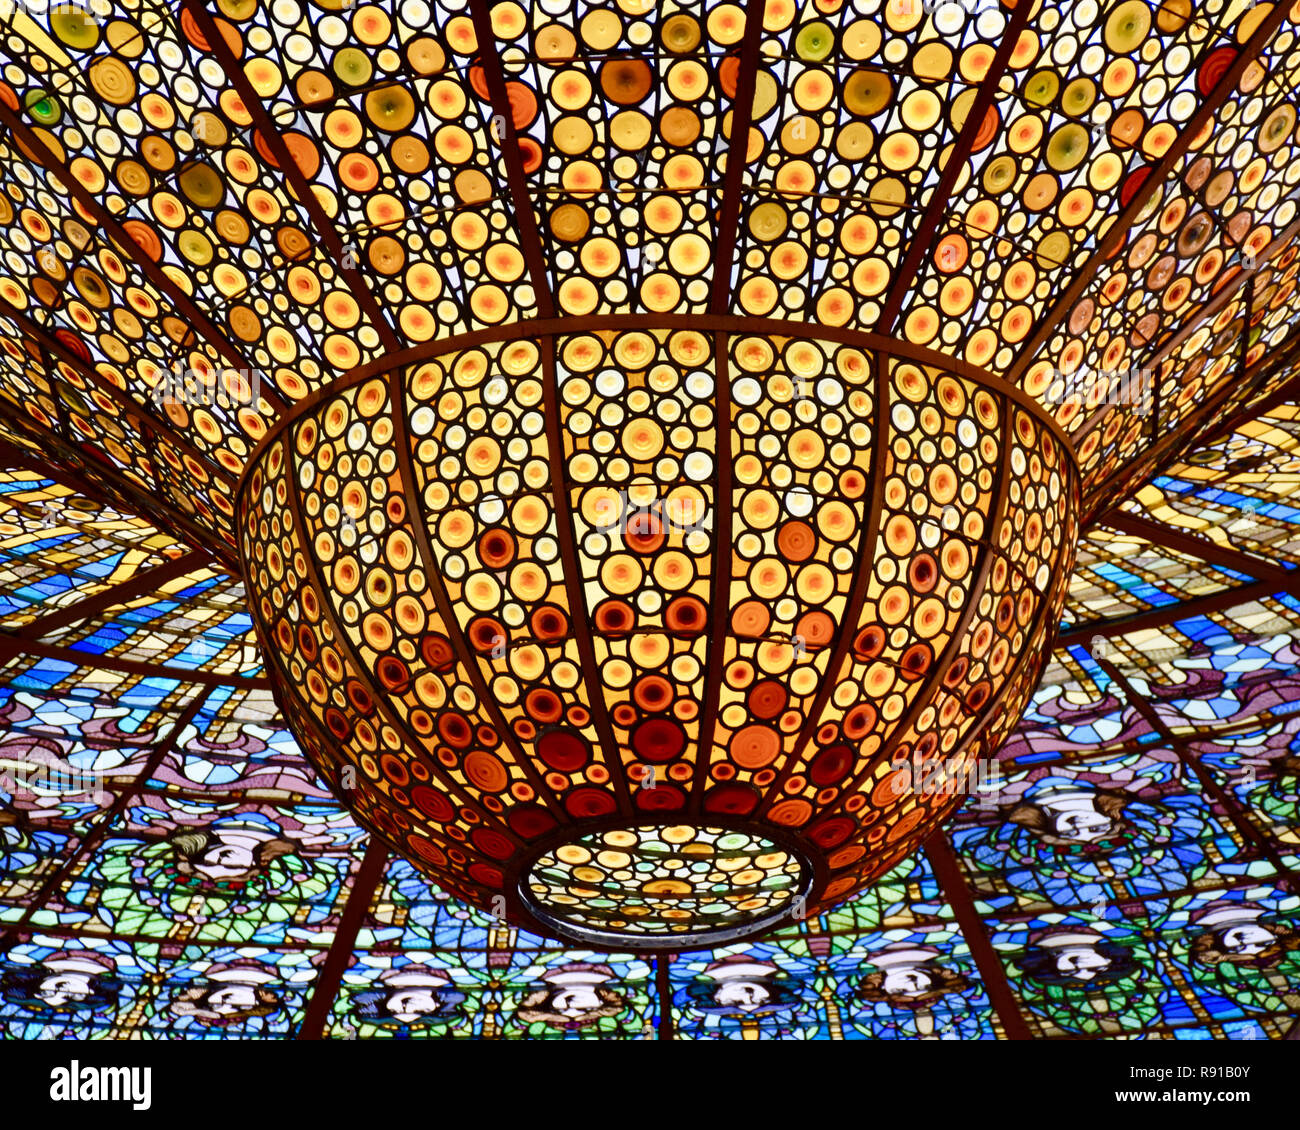 The Chandelier. Palace of Catalan Music, Palau de la​ Musica Catalana, Barcelona, Spain - Stock Image